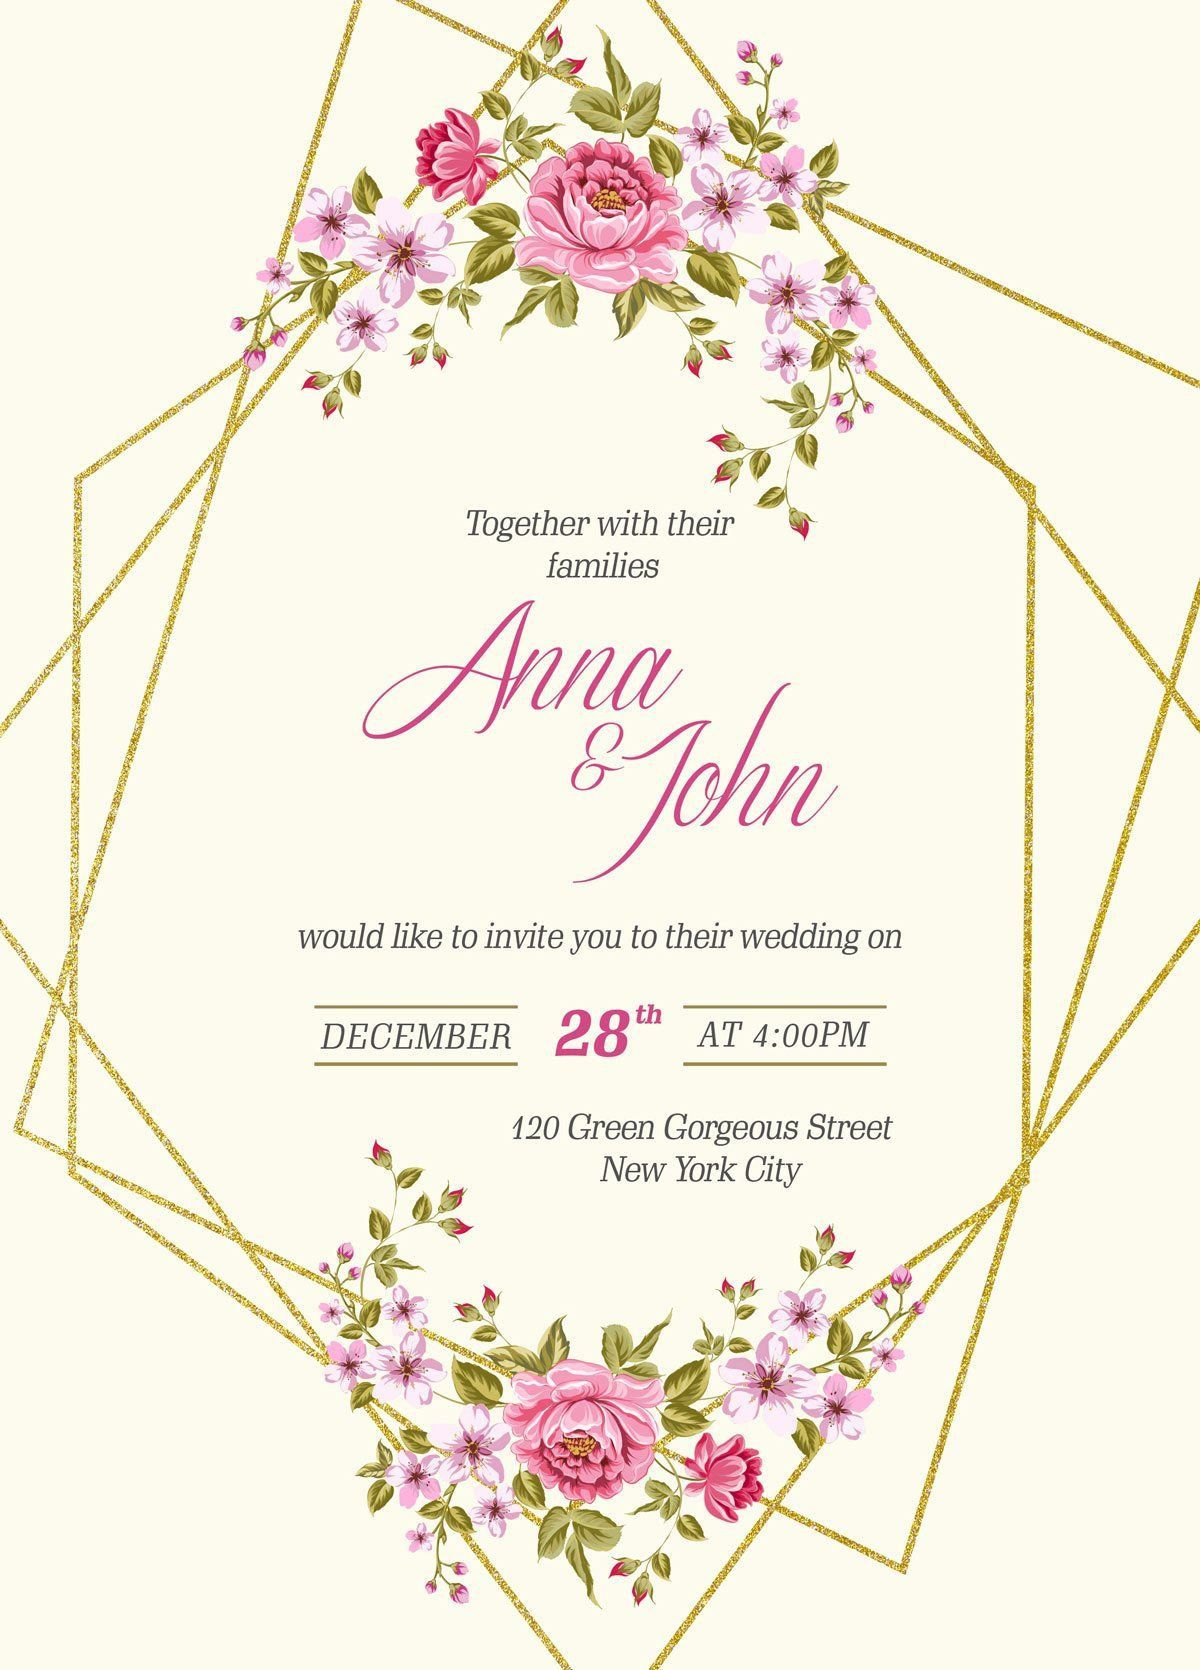 003 Fascinating Free Wedding Invitation Template For Word 2019 Highest Clarity Full